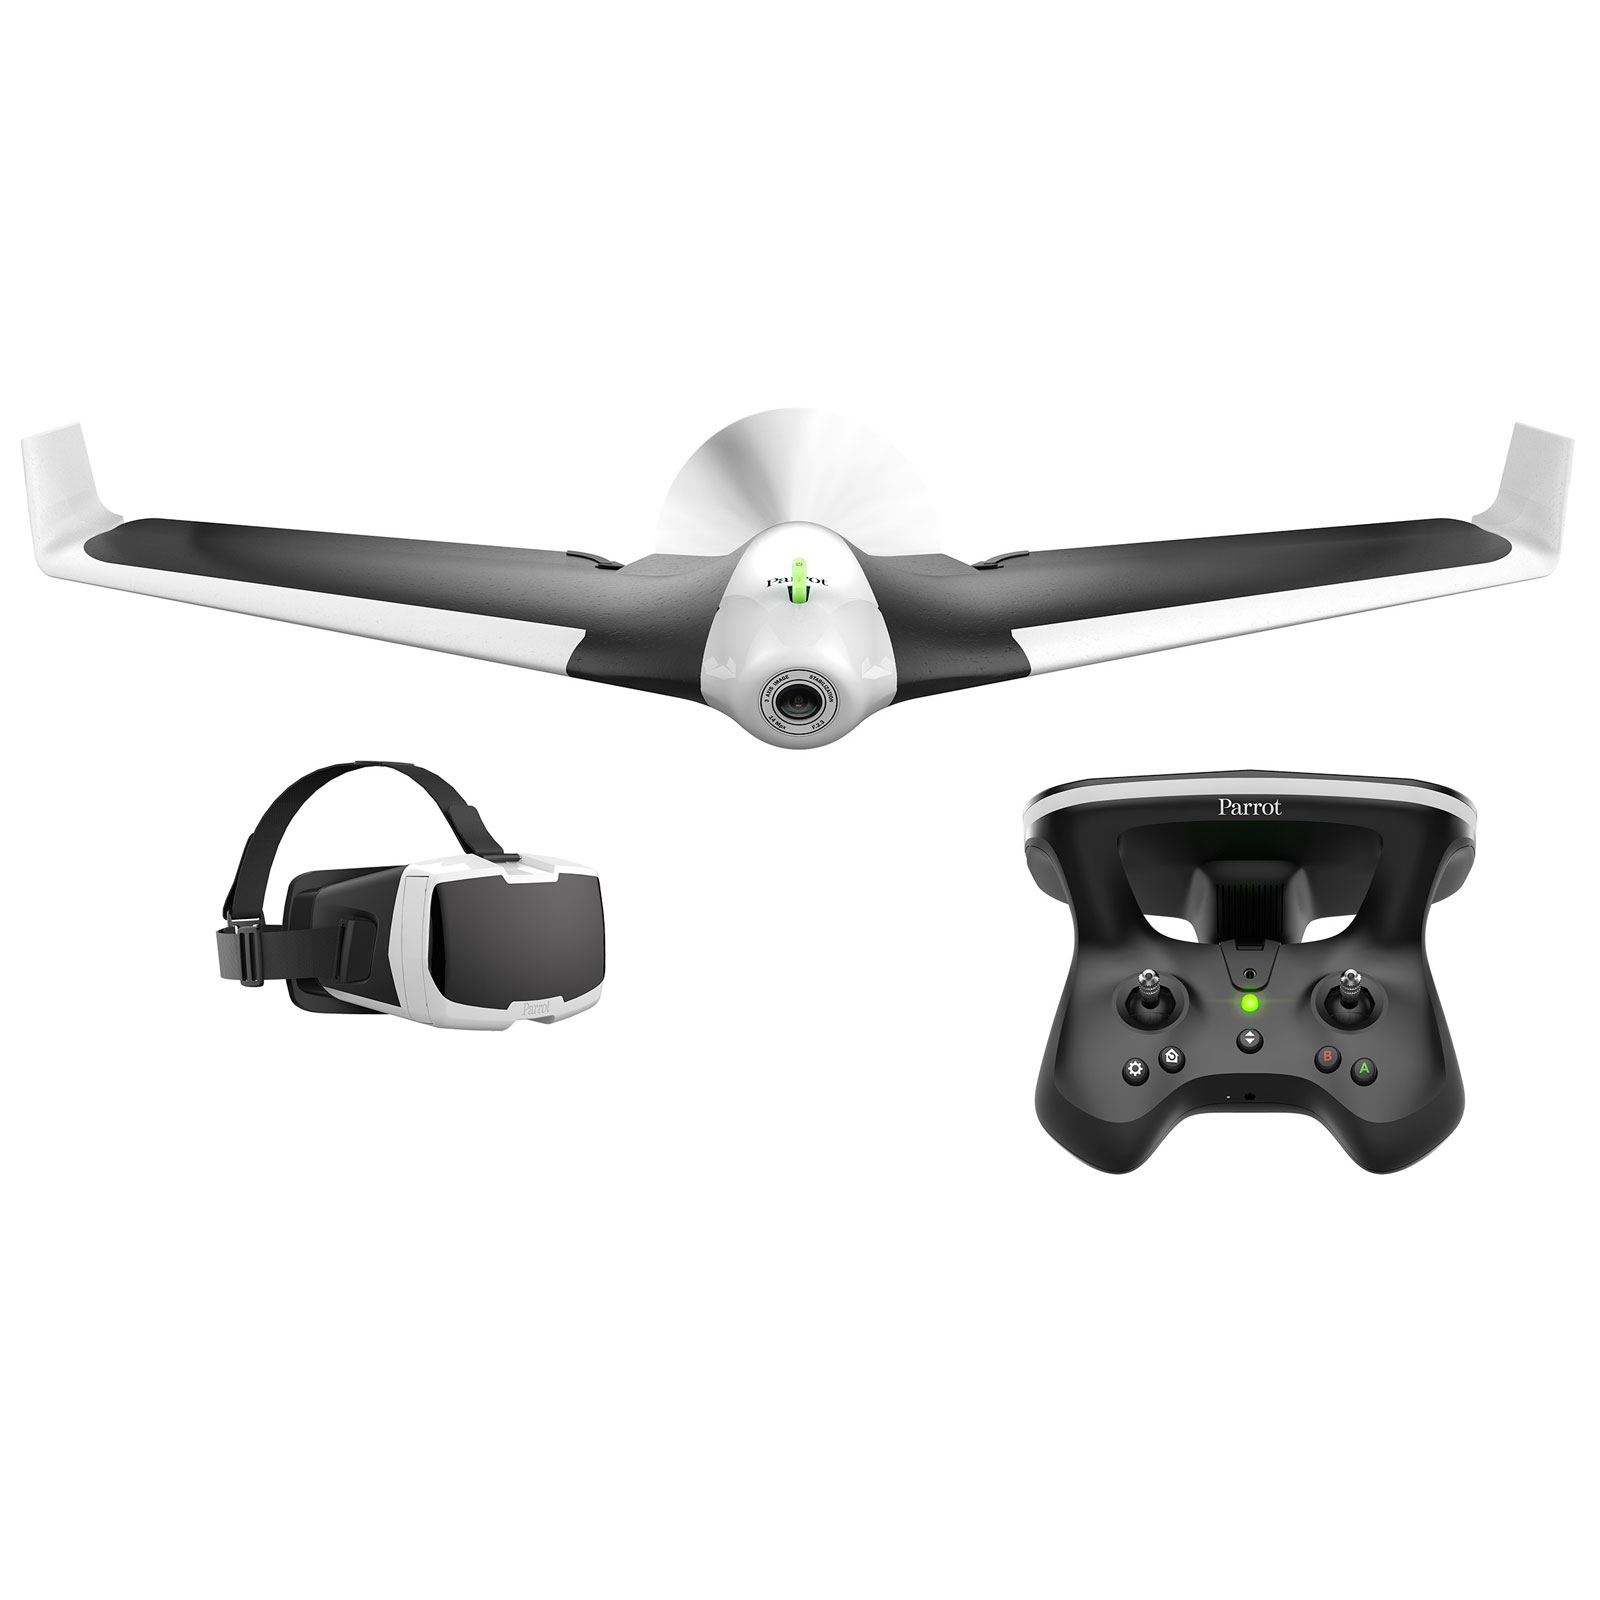 parrot disco fpv drone parrot sur. Black Bedroom Furniture Sets. Home Design Ideas